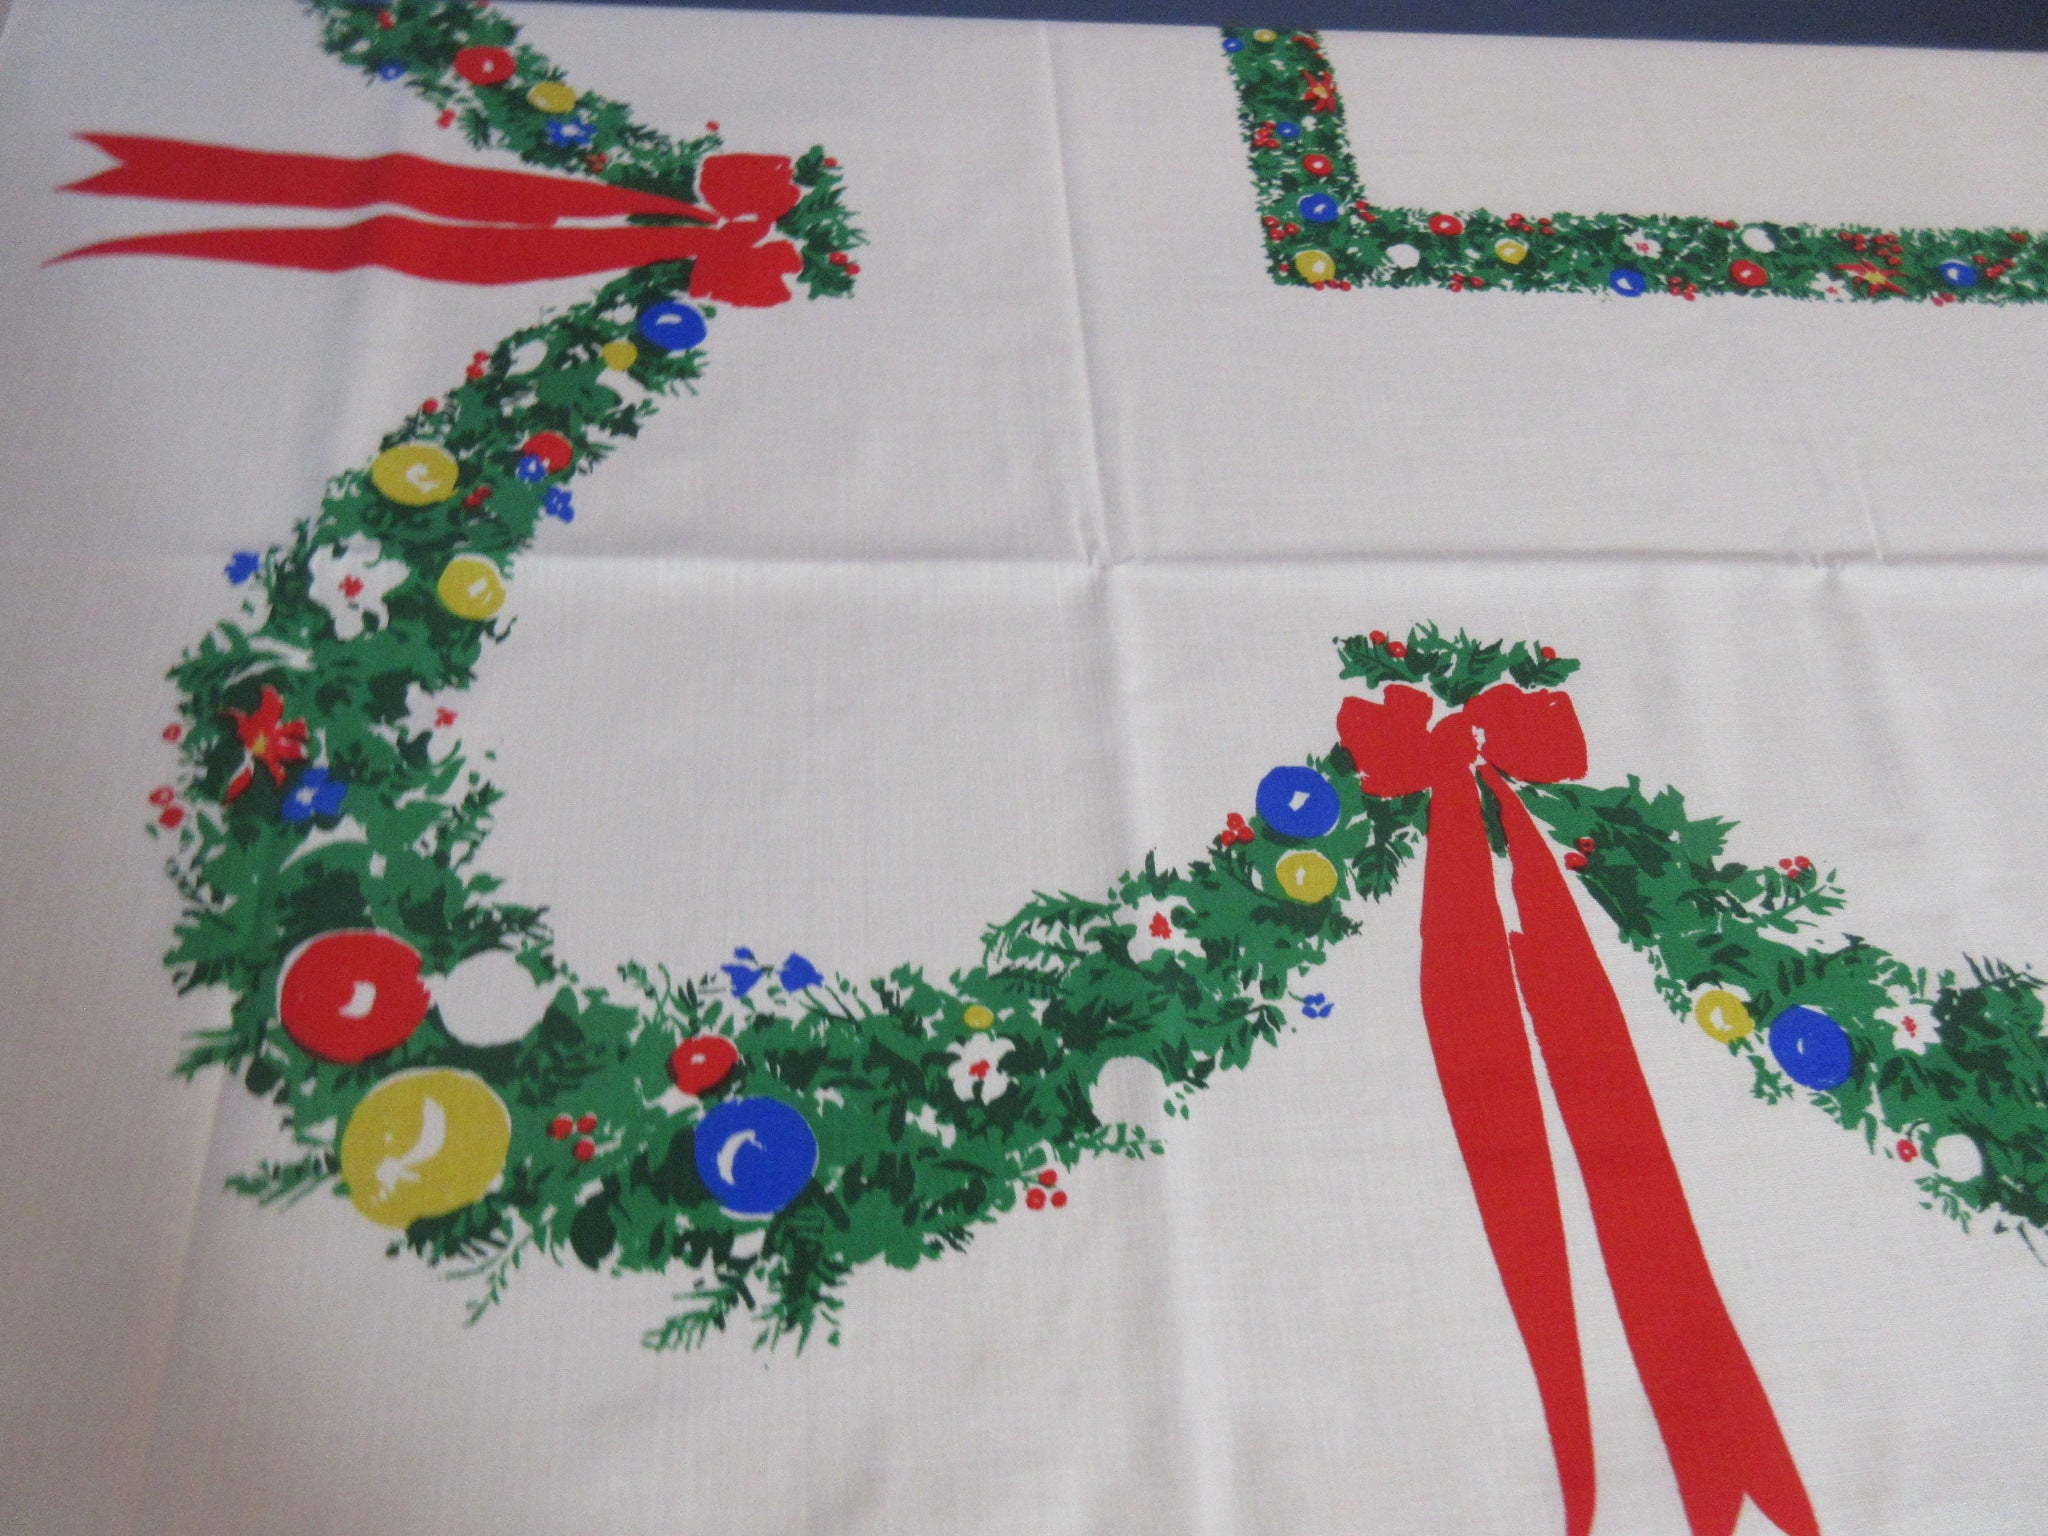 RECTANGLE 52x70 Christmas Bower Swags NOS Vintage Printed Tablecloth (71 X 52 actual)